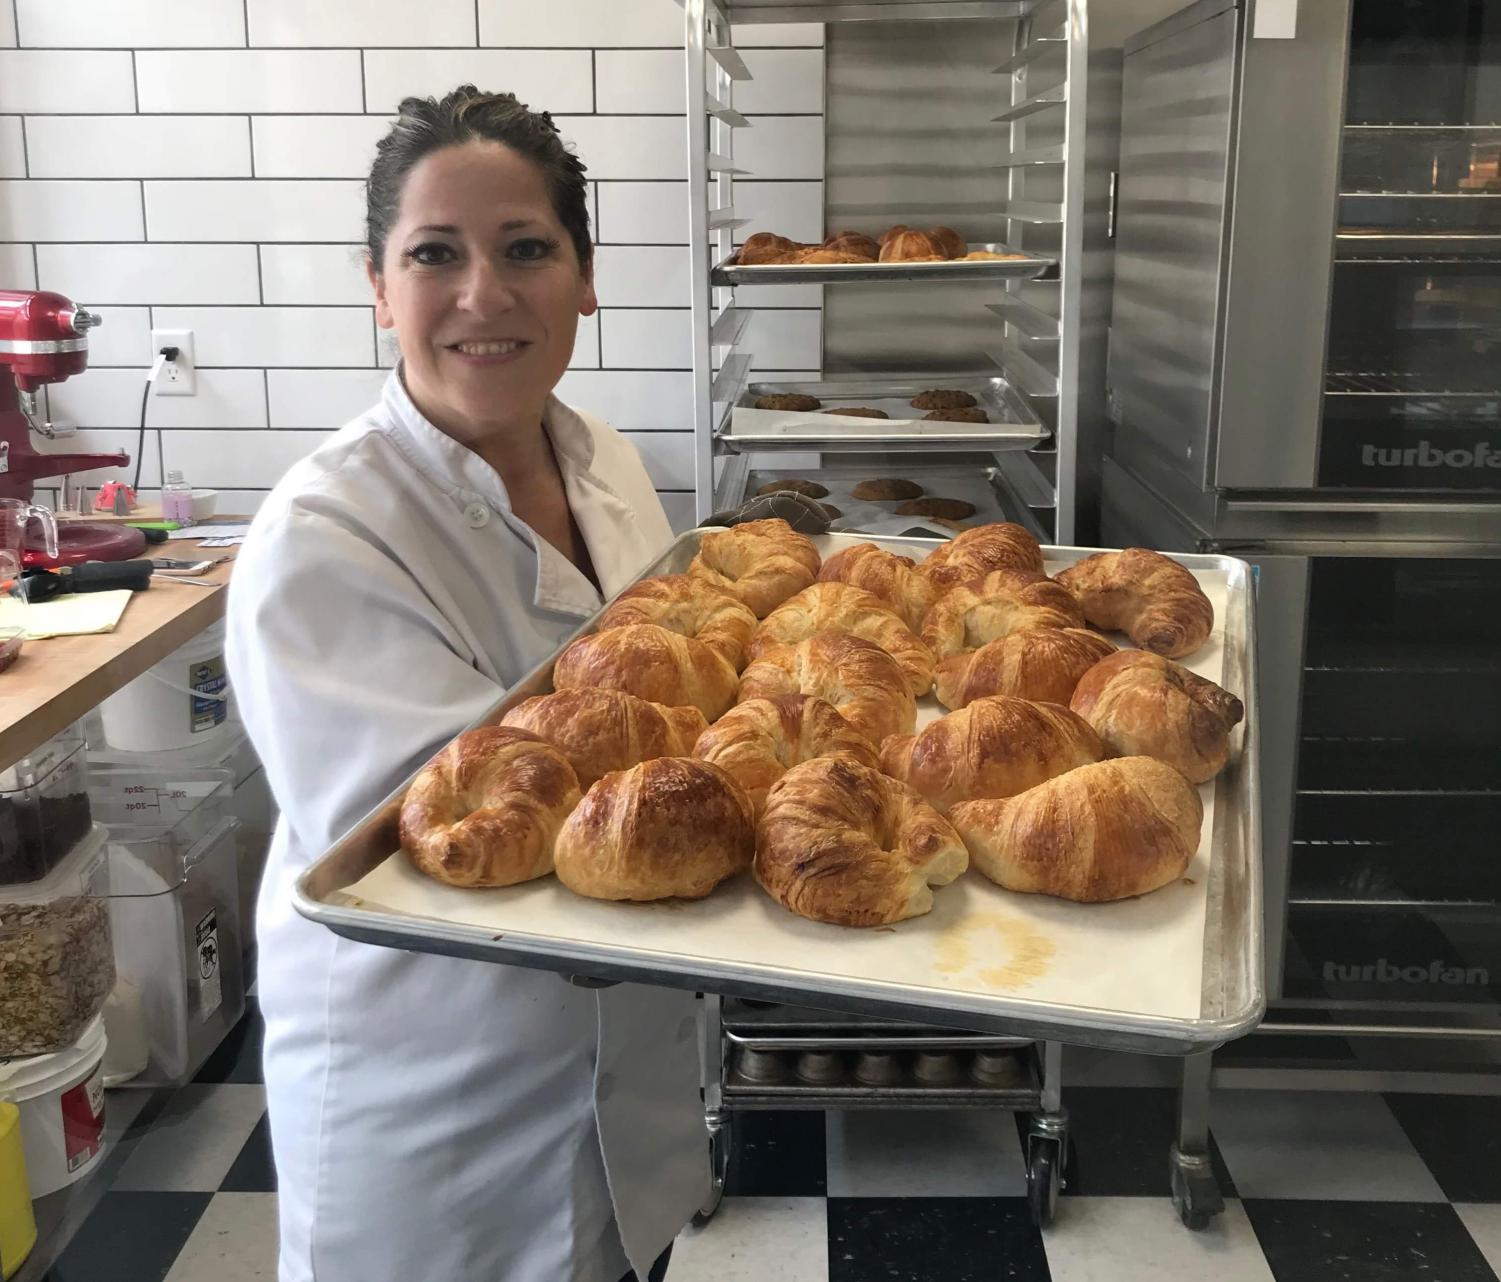 Michelle Kelly, owner and baker of Mademoiselle of Patchogue pictured with a tray of freshly baked croissants.